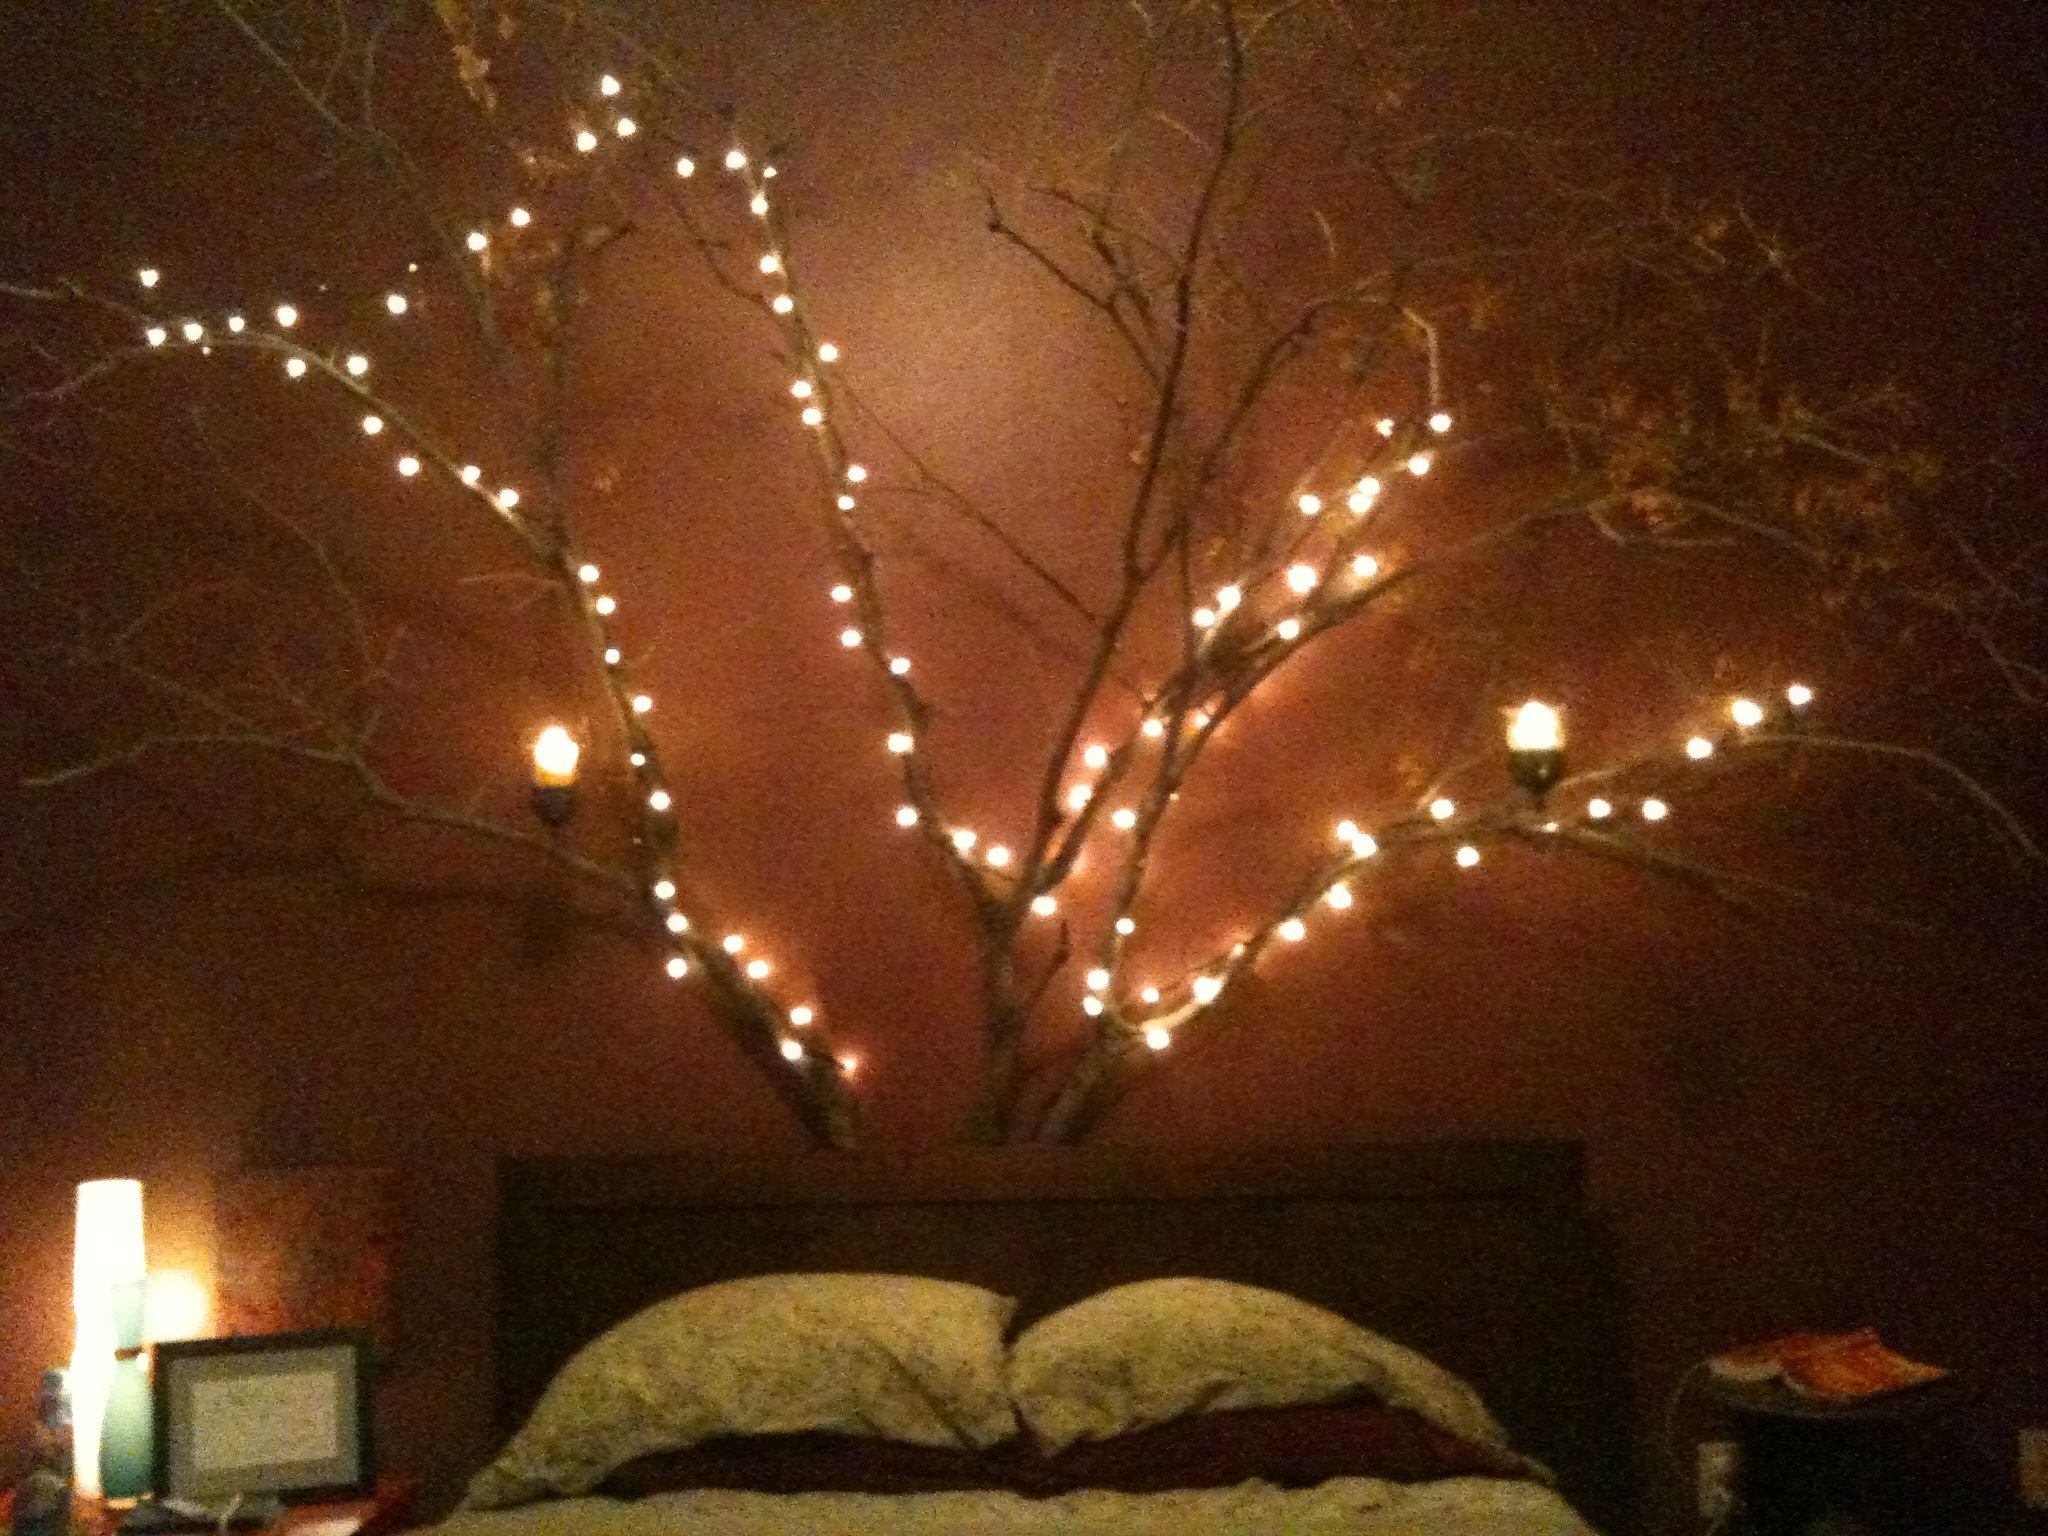 diy bedroom tree i made home skillet pinterest diy bedroom bedrooms and room. Black Bedroom Furniture Sets. Home Design Ideas